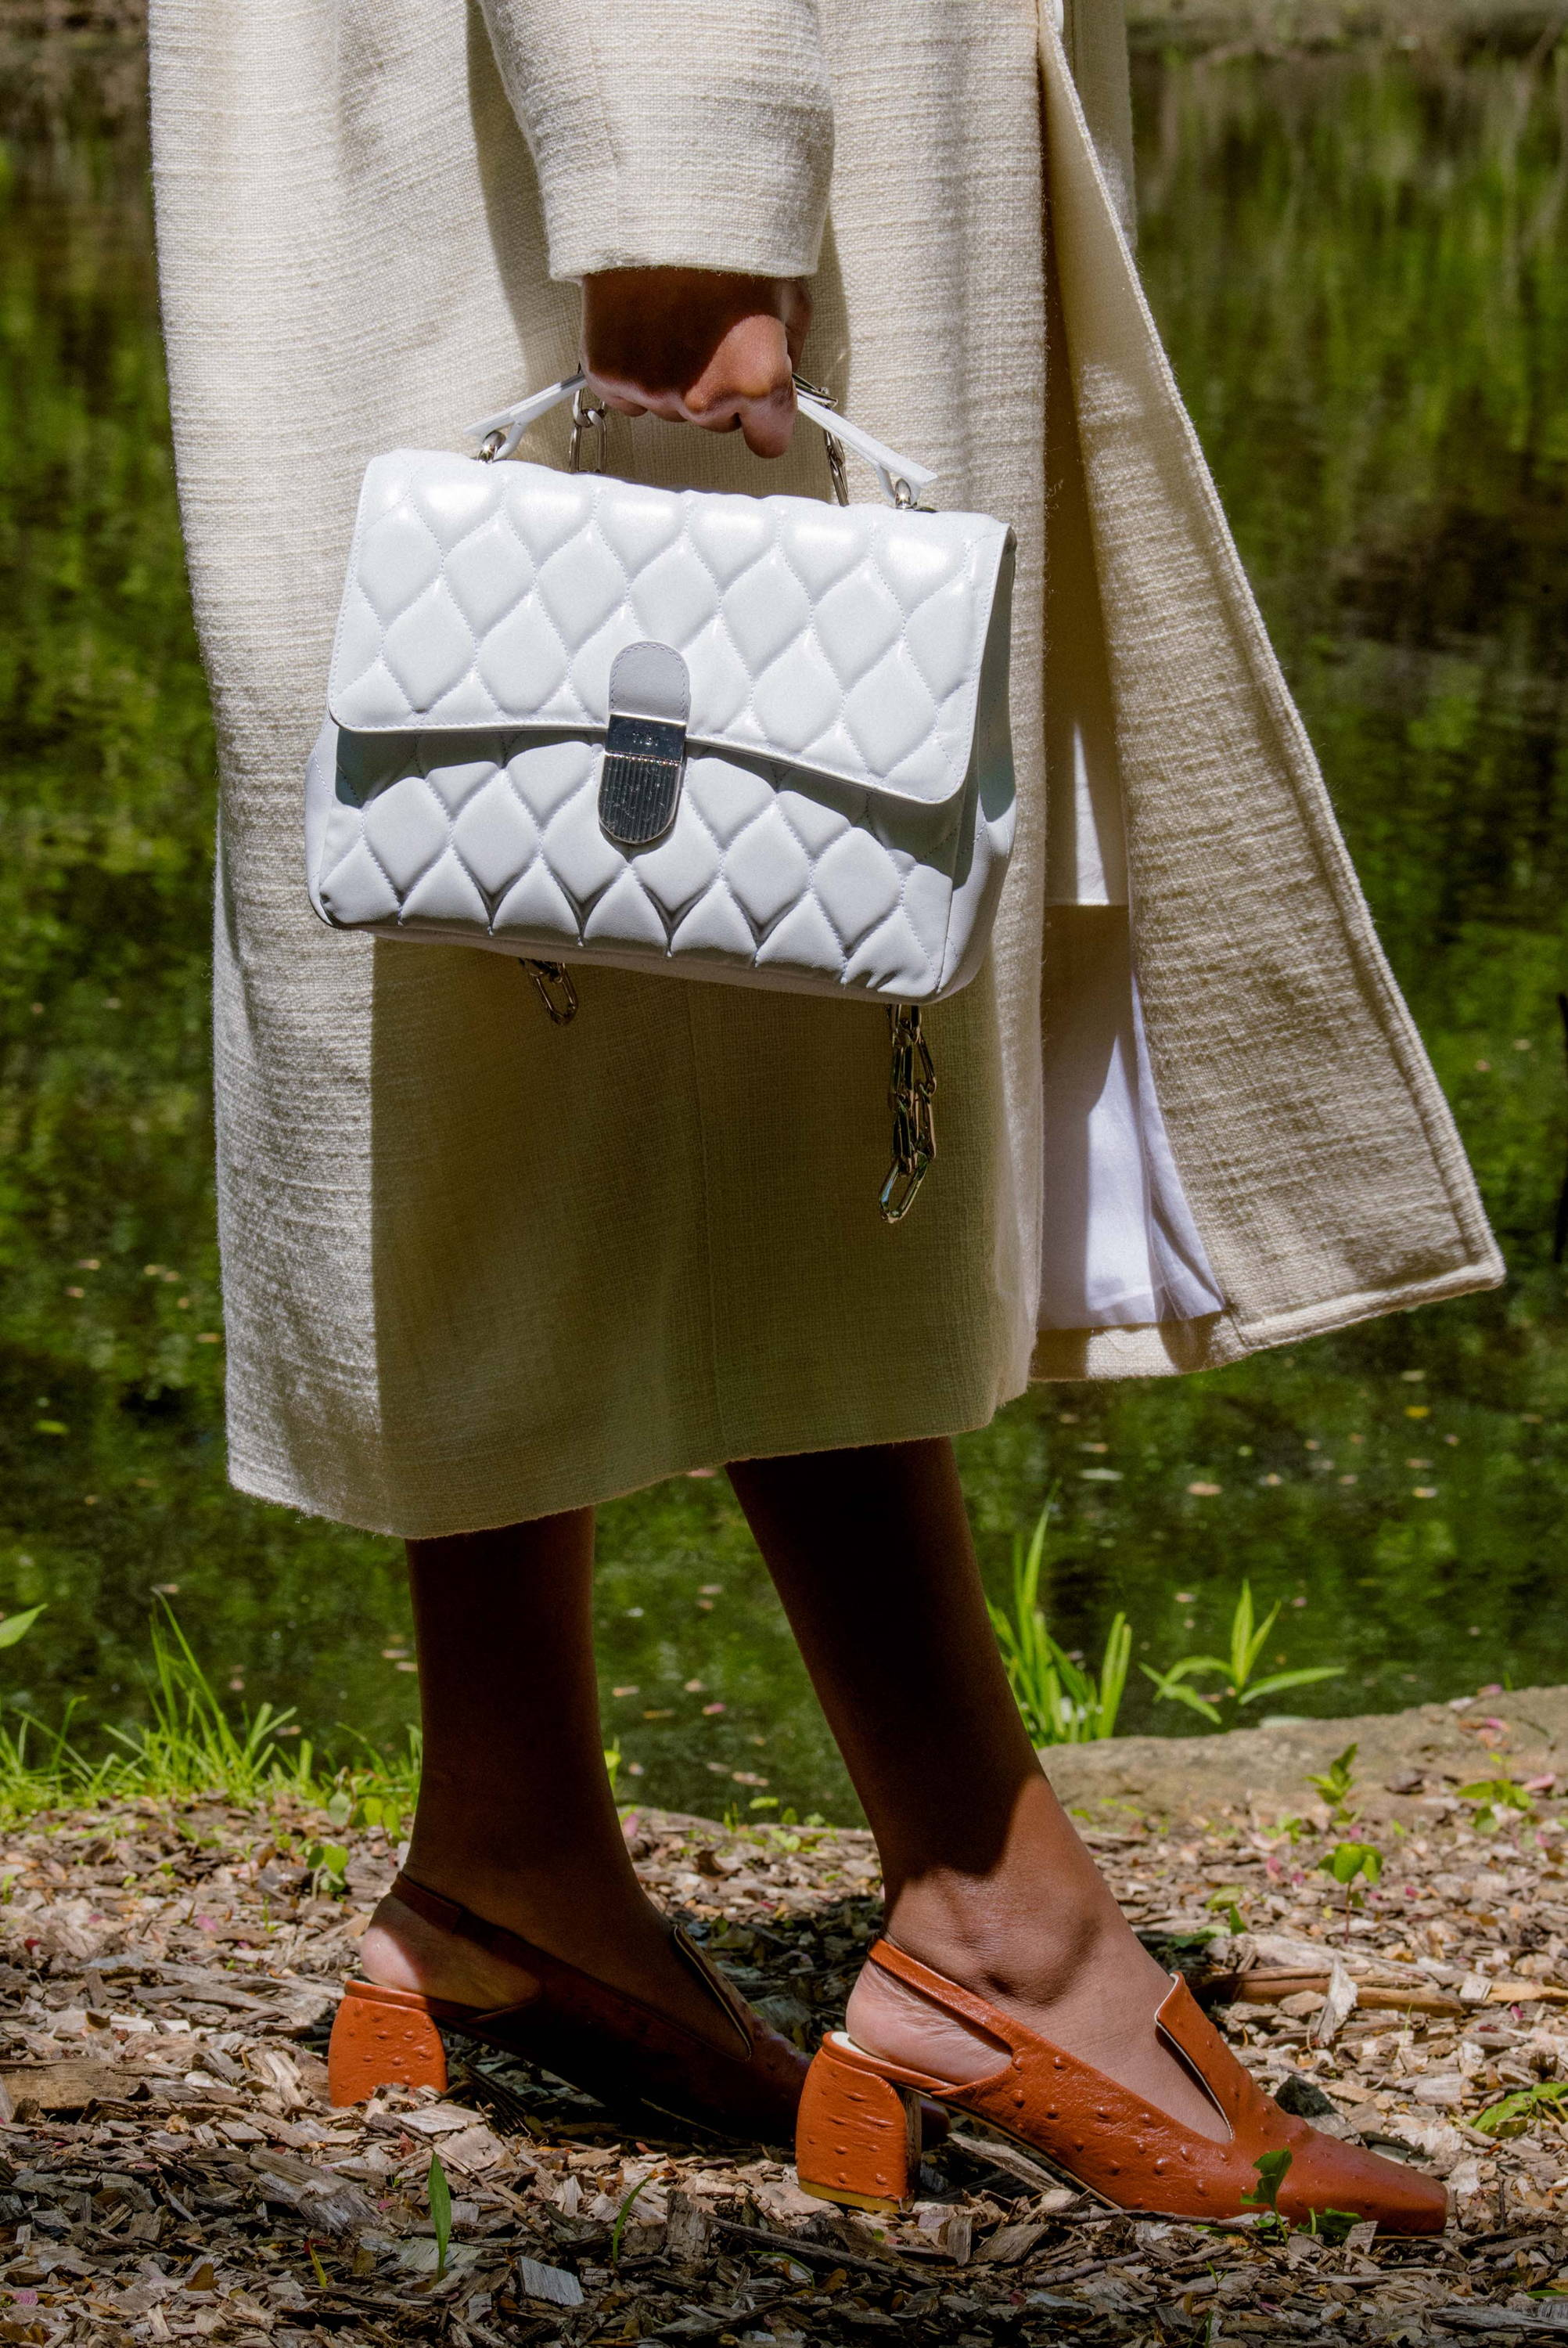 lower half of model holding white quilted bag and the brown ostrich evon heel.